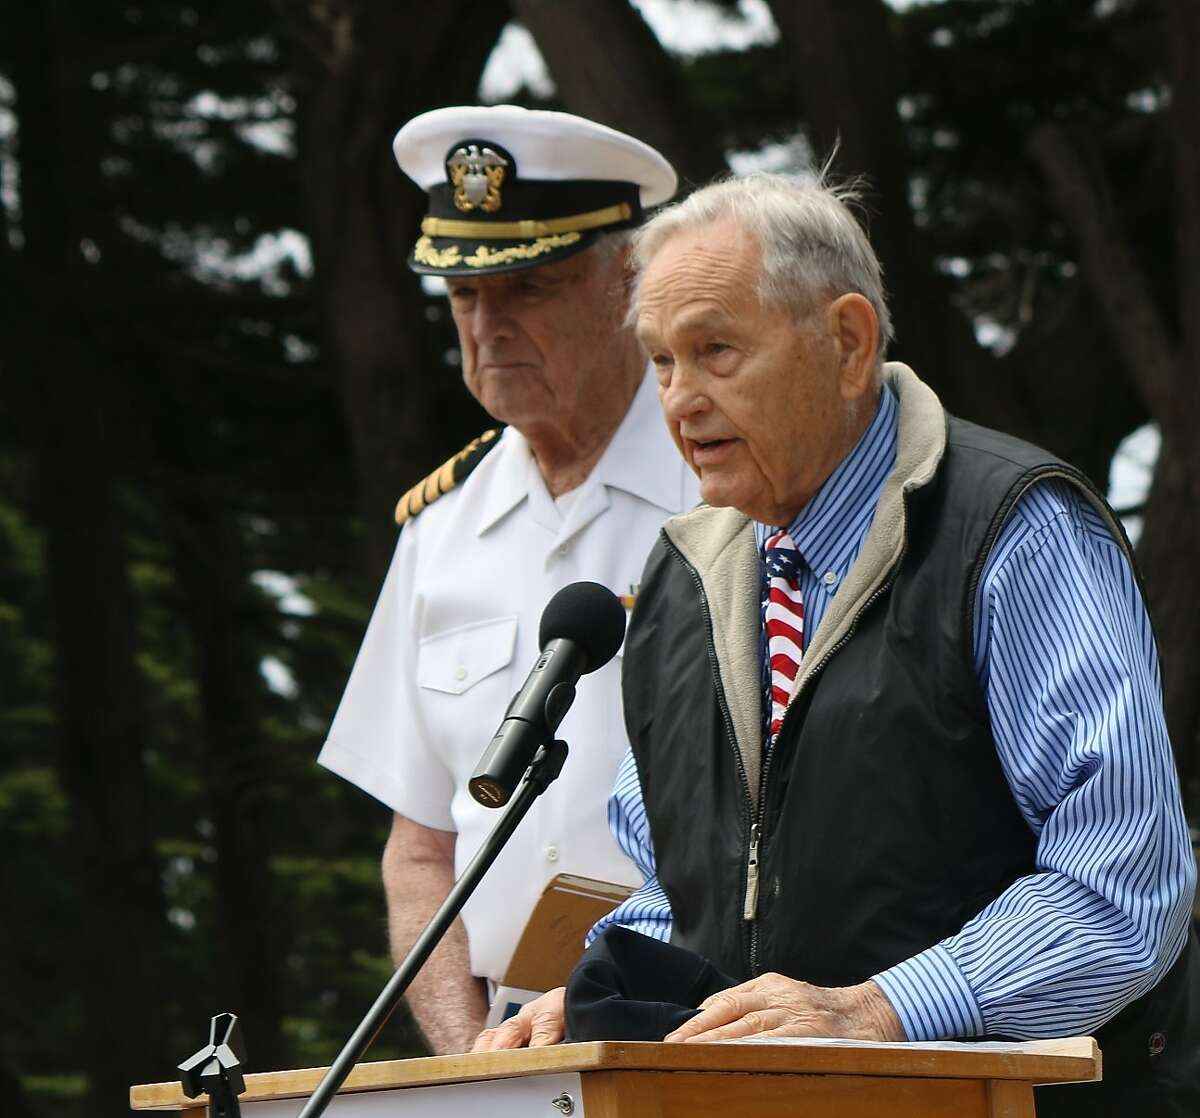 """Richard """"Chief Johnny"""" Jongordon makes opening remarks at the USS San Francisco Memorial ceremony on Memorial Day 2018, with Capt. Stan Ellexson next to him."""